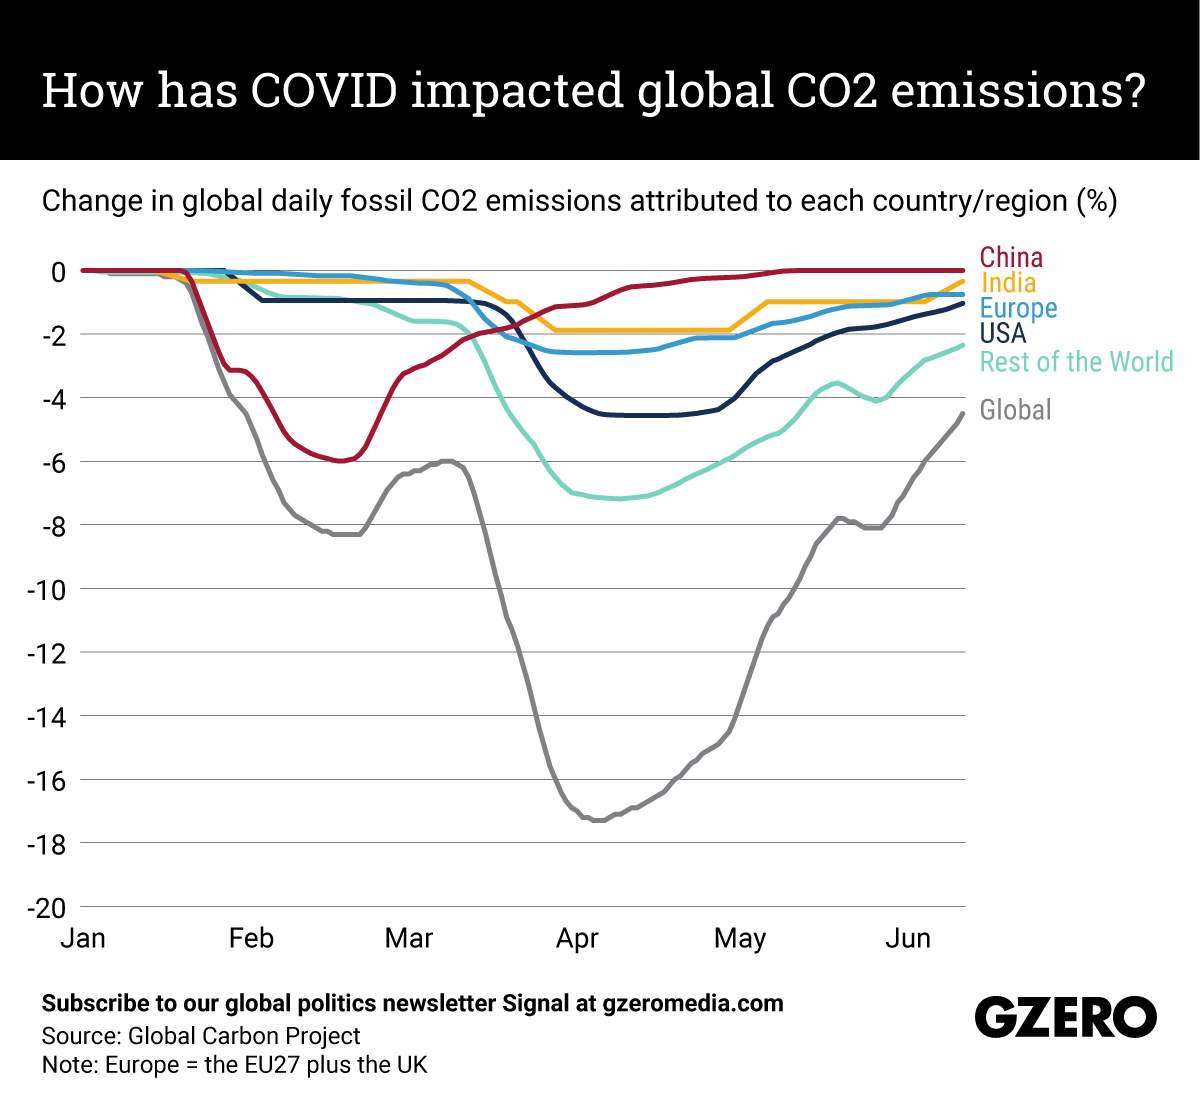 The Graphic Truth: How has COVID impacted global CO2 emissions?